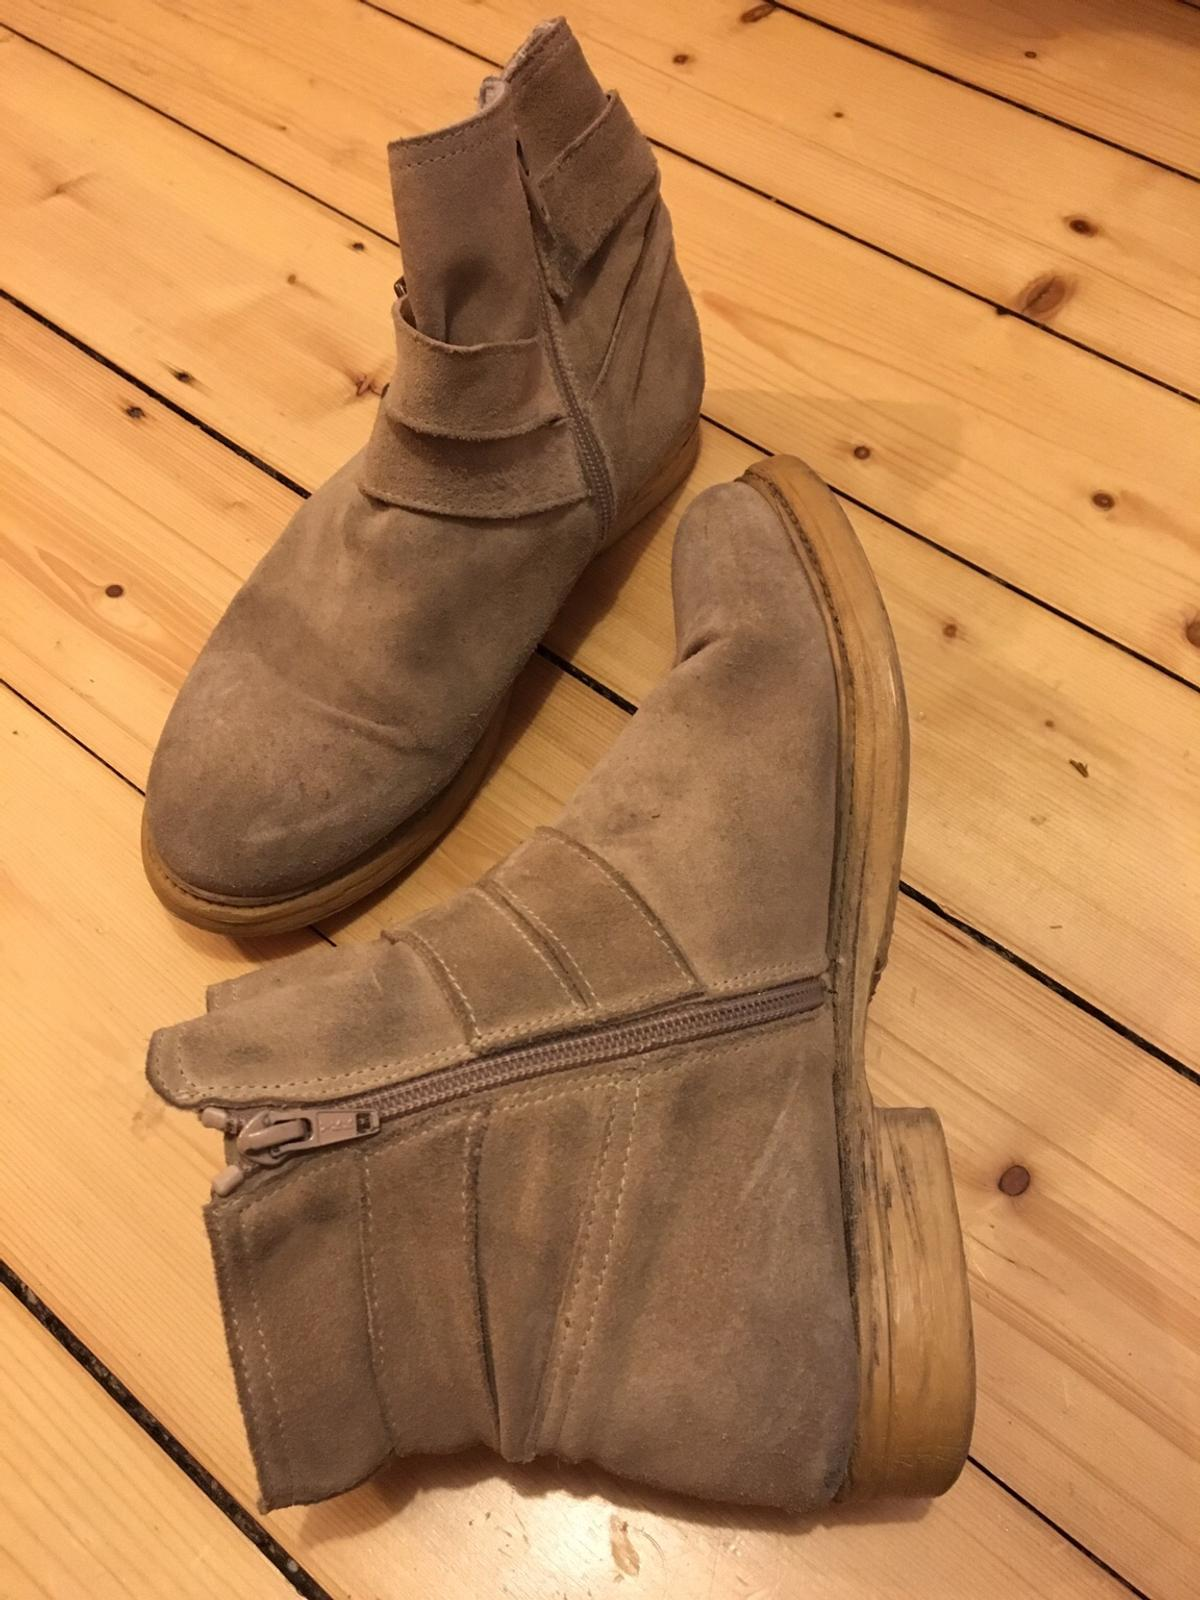 hot sale online 4a69c 70af9 Esprit Boots in 40 in 68167 Mannheim for €7.00 for sale - Shpock